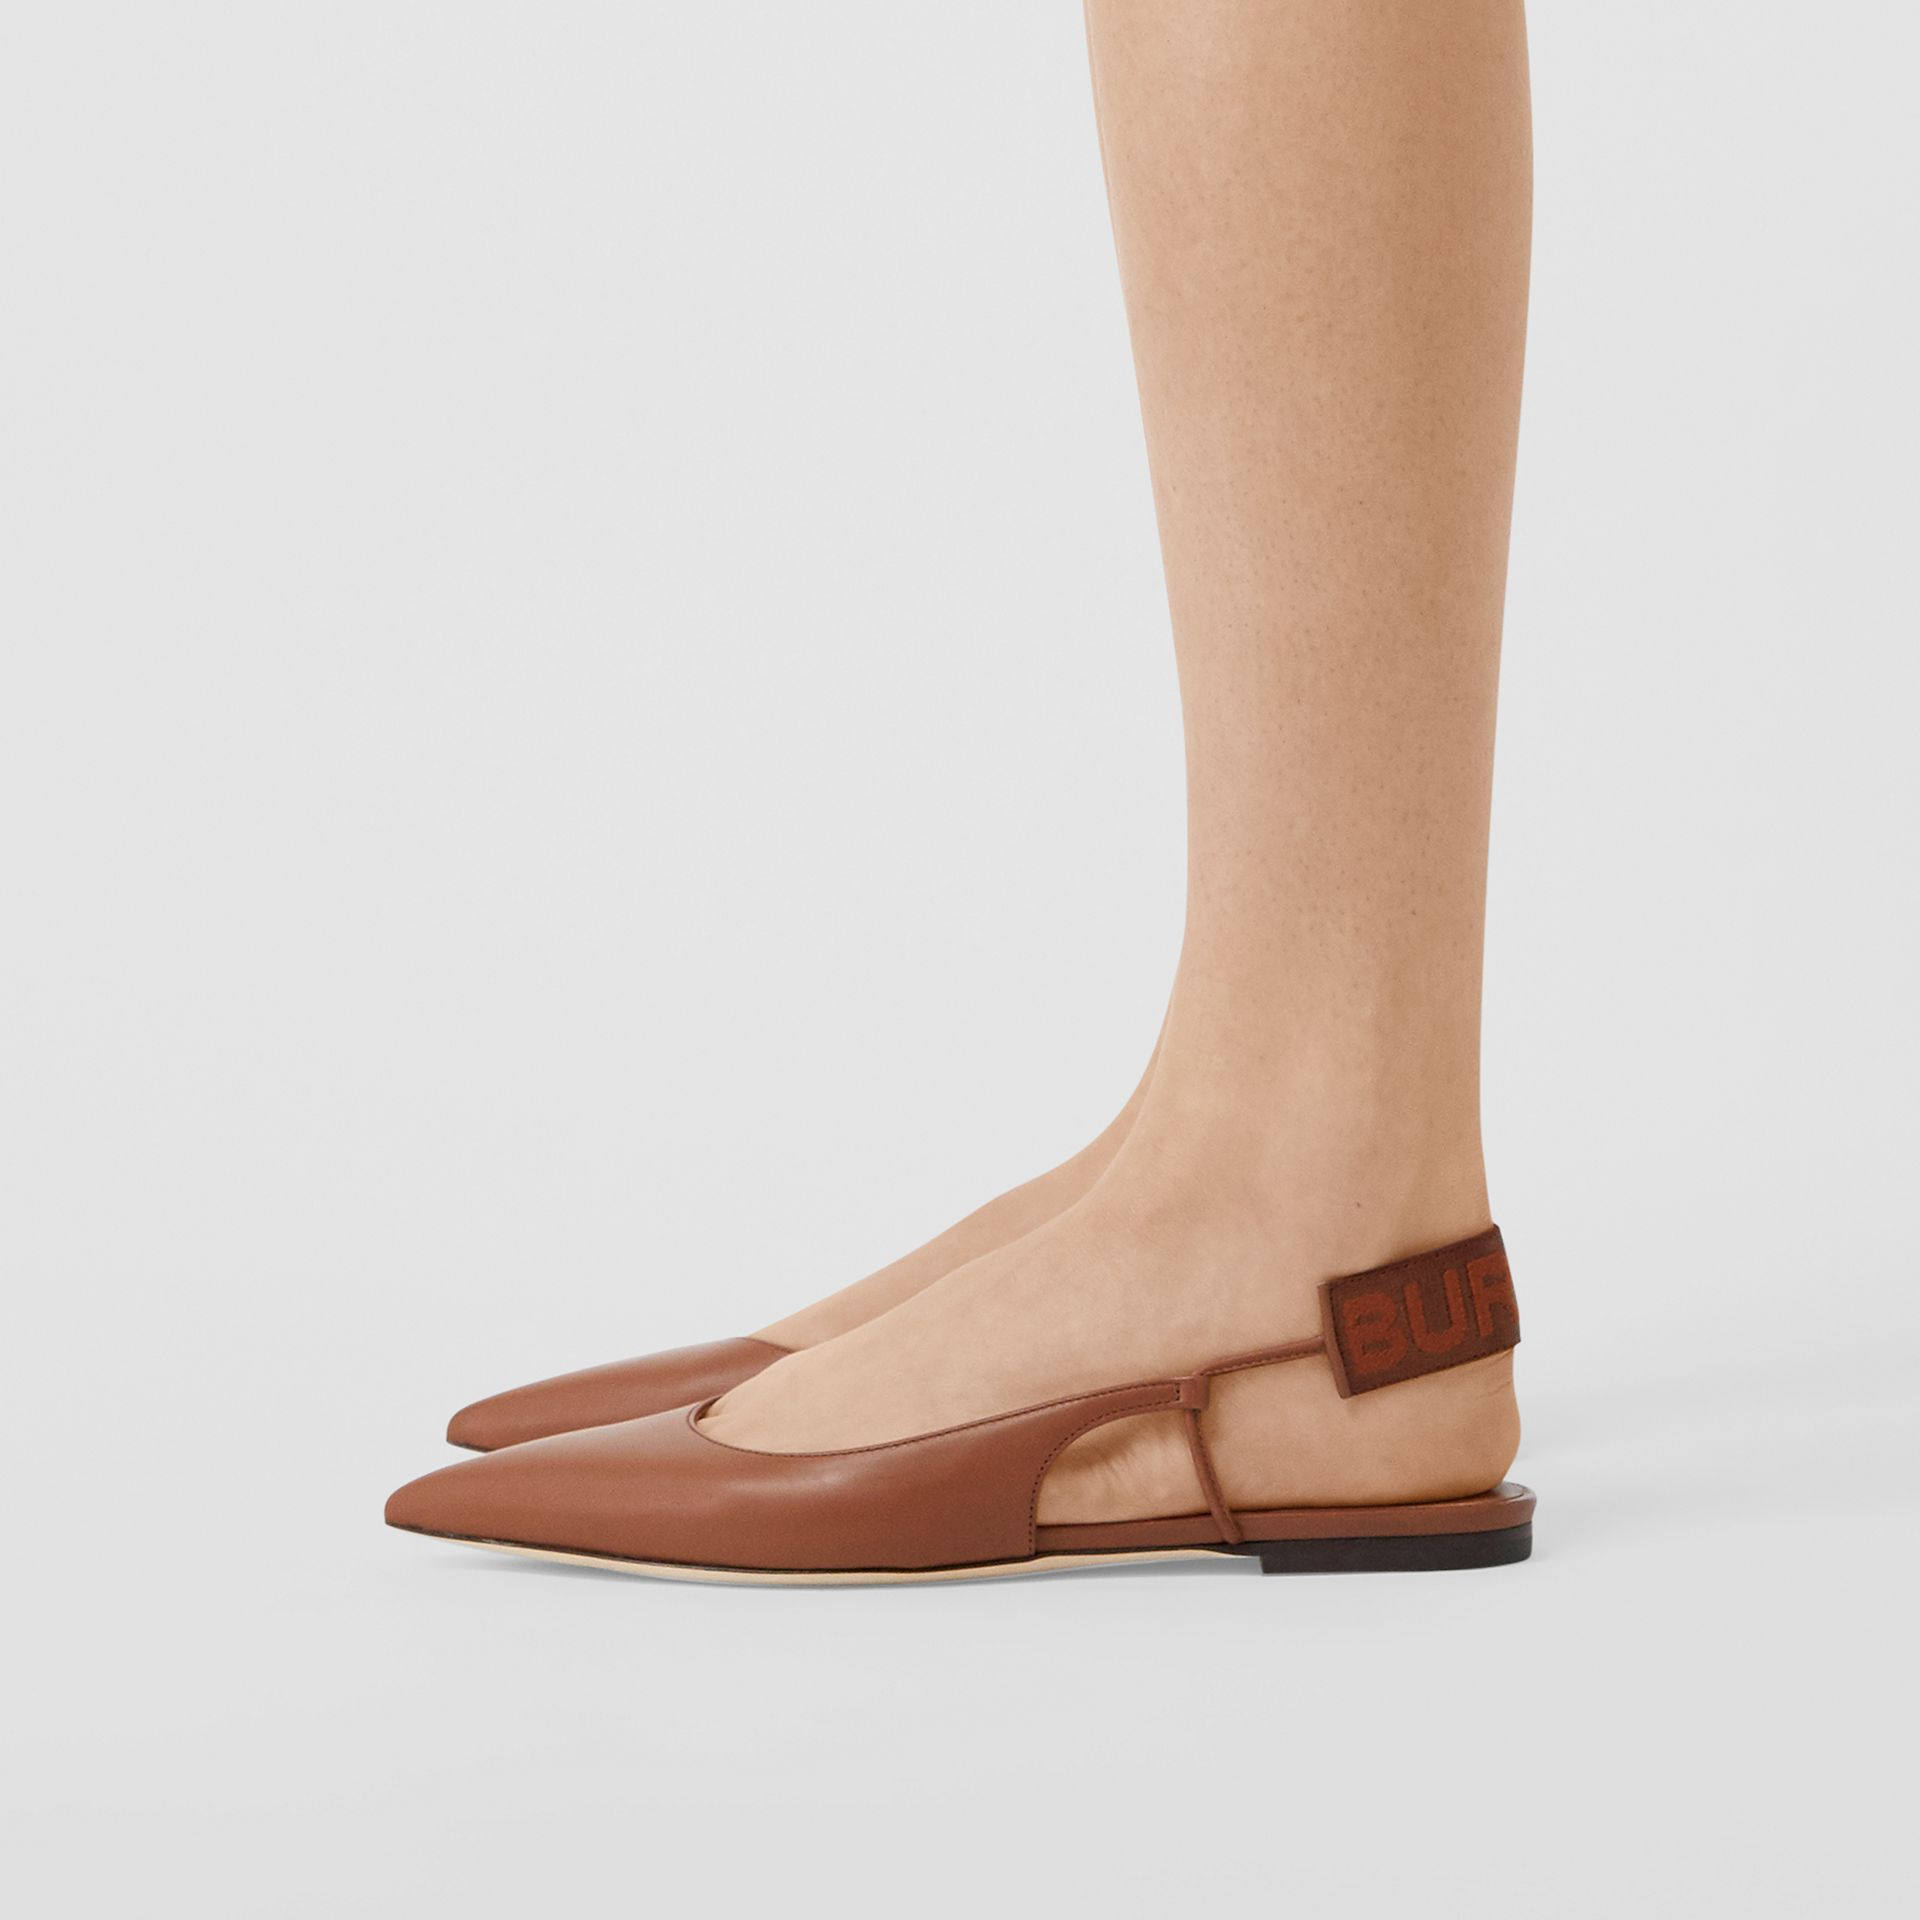 Logo Detail Leather Slingback Flats in Tan - Women | Burberry - gallery image 2